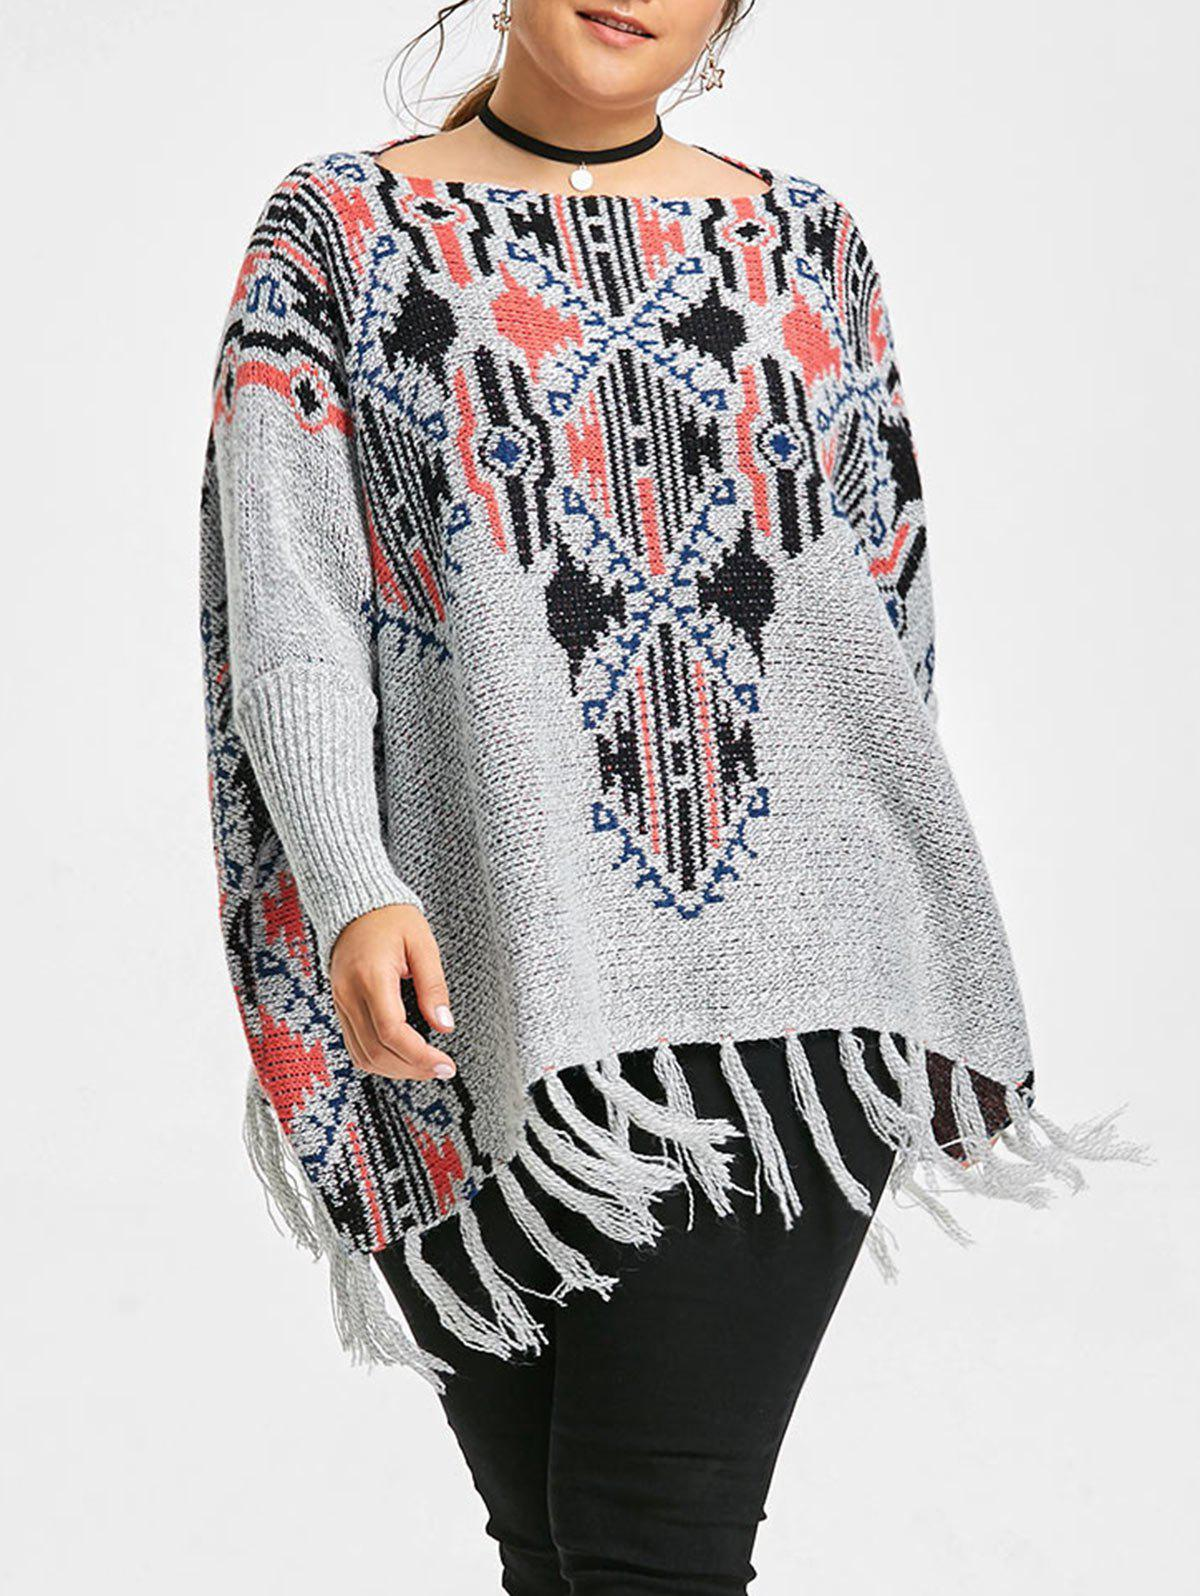 Knit Geometric Print Plus Size Fringe SweaterWOMEN<br><br>Size: ONE SIZE; Color: GRAY; Type: Pullovers; Material: Polyester,Spandex; Sleeve Length: Full; Collar: Boat Neck; Style: Fashion; Season: Fall,Winter; Pattern Type: Geometric; Weight: 0.6150kg; Package Contents: 1 x Sweater;